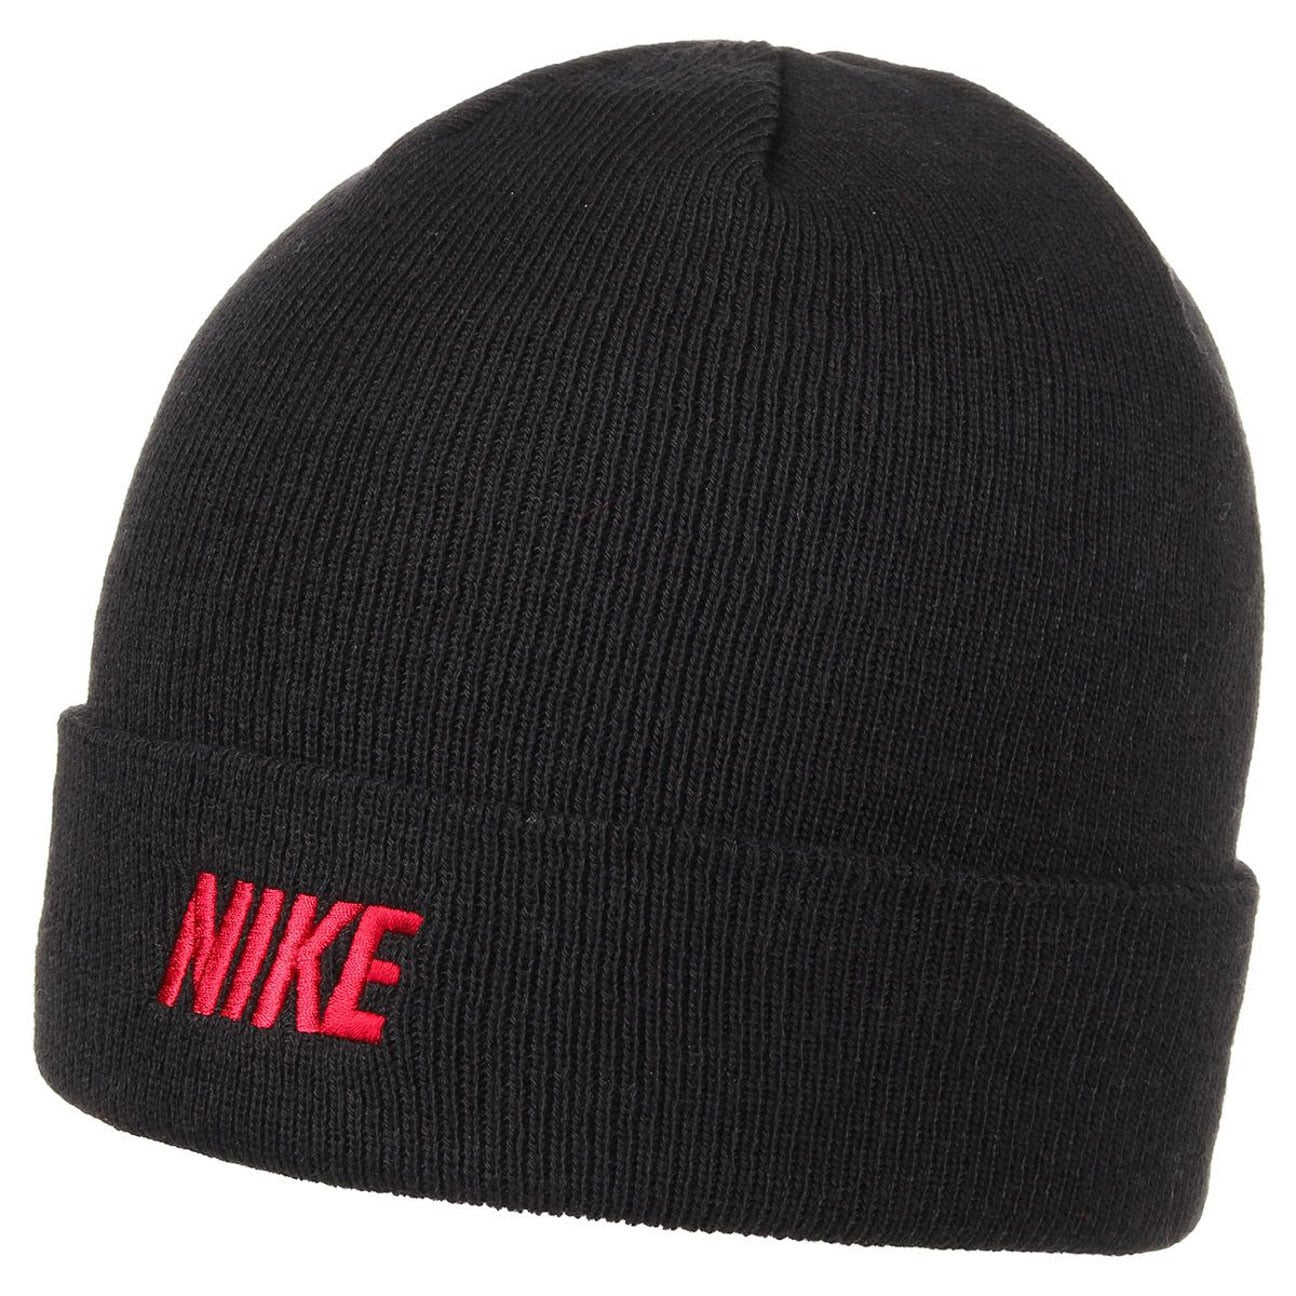 cb6403e3276 ... Iconic Winter Knit Hat by Nike - black 1